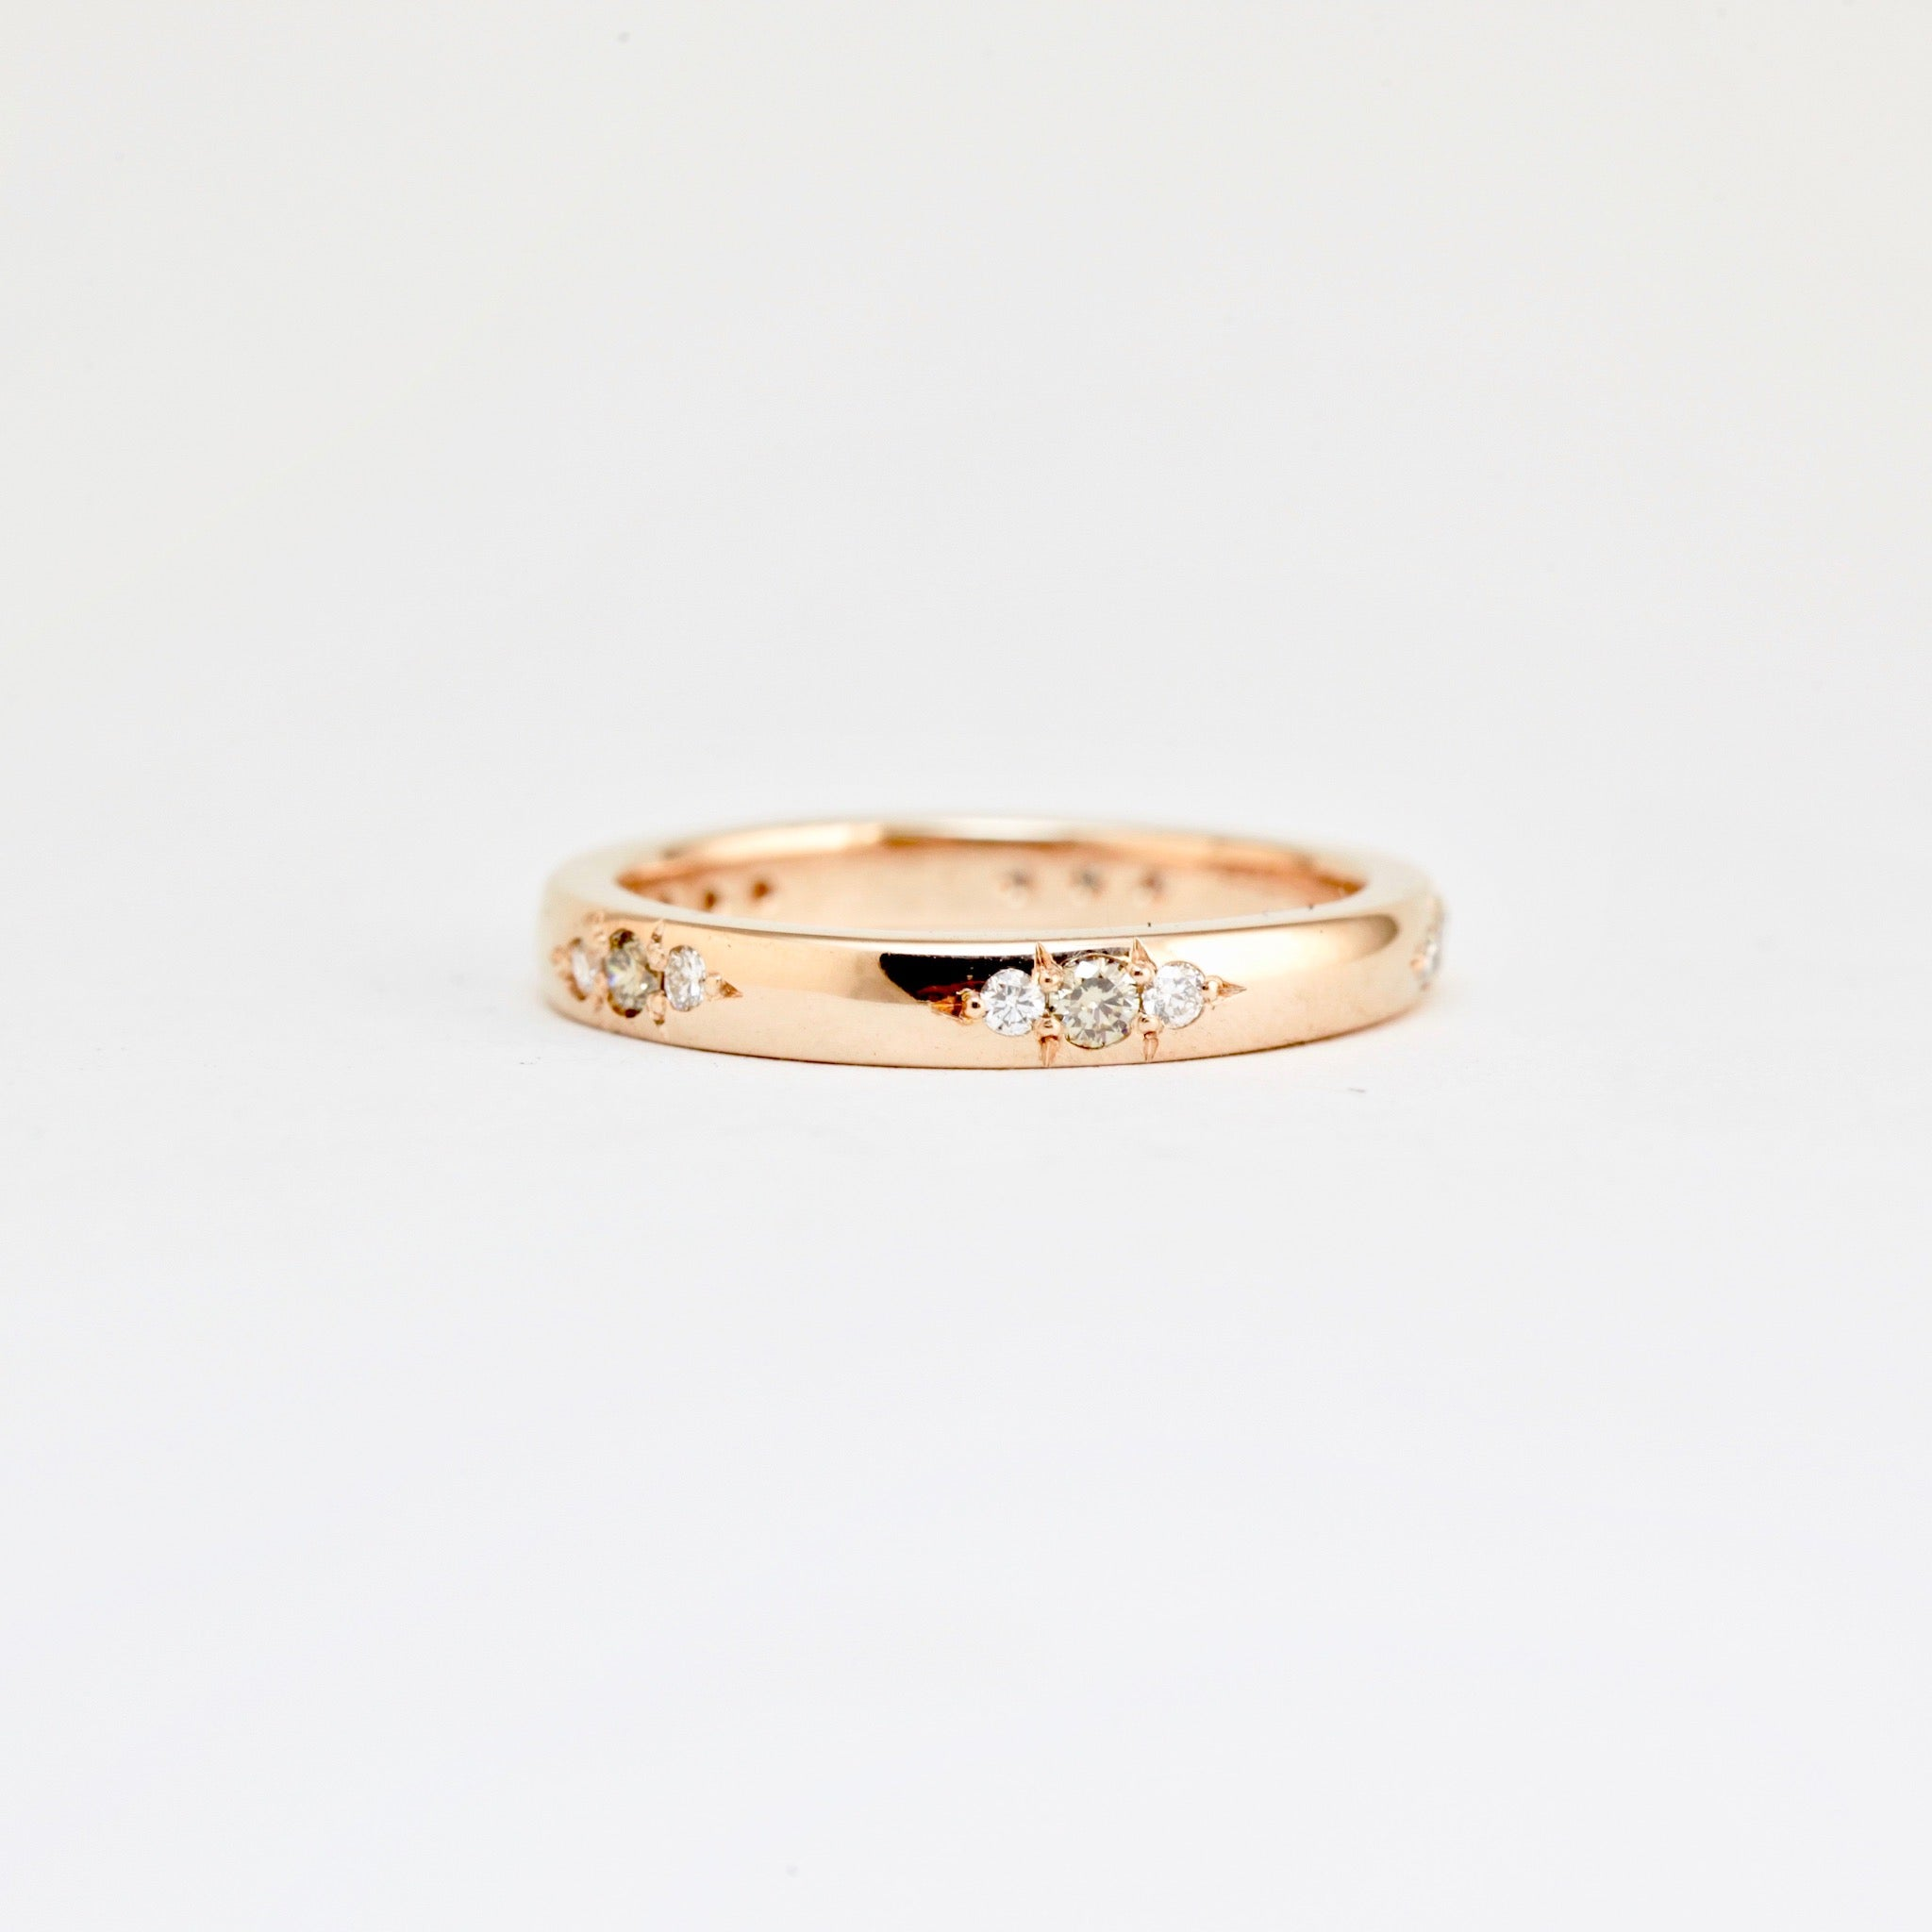 Diamond and rose gold wedding band.